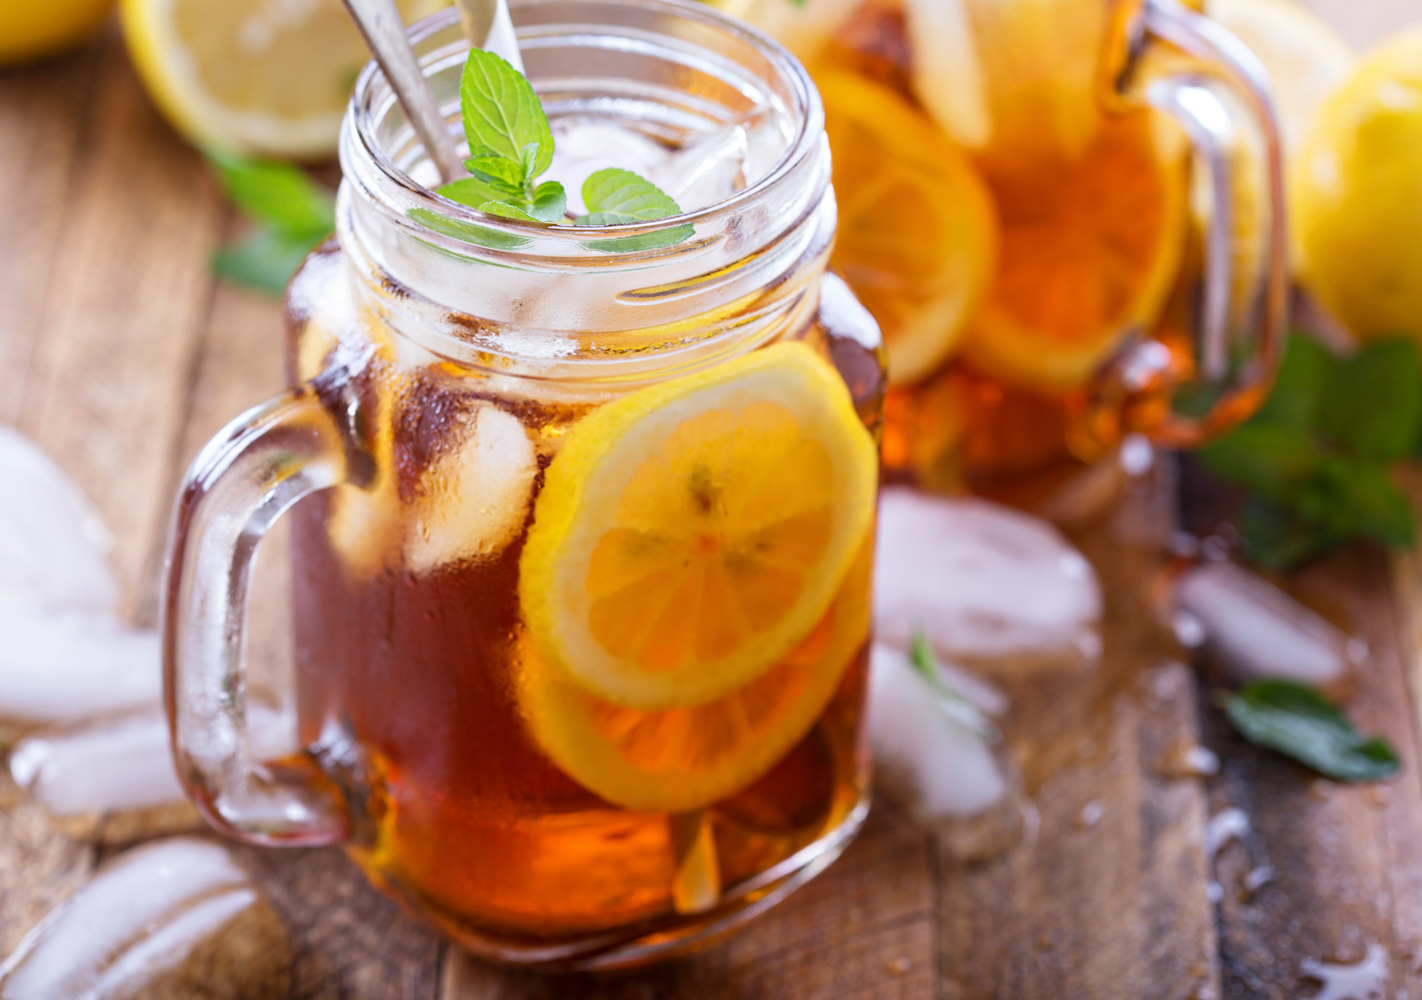 Nothing feels like summer more than a chilled glass of sweet iced tea!